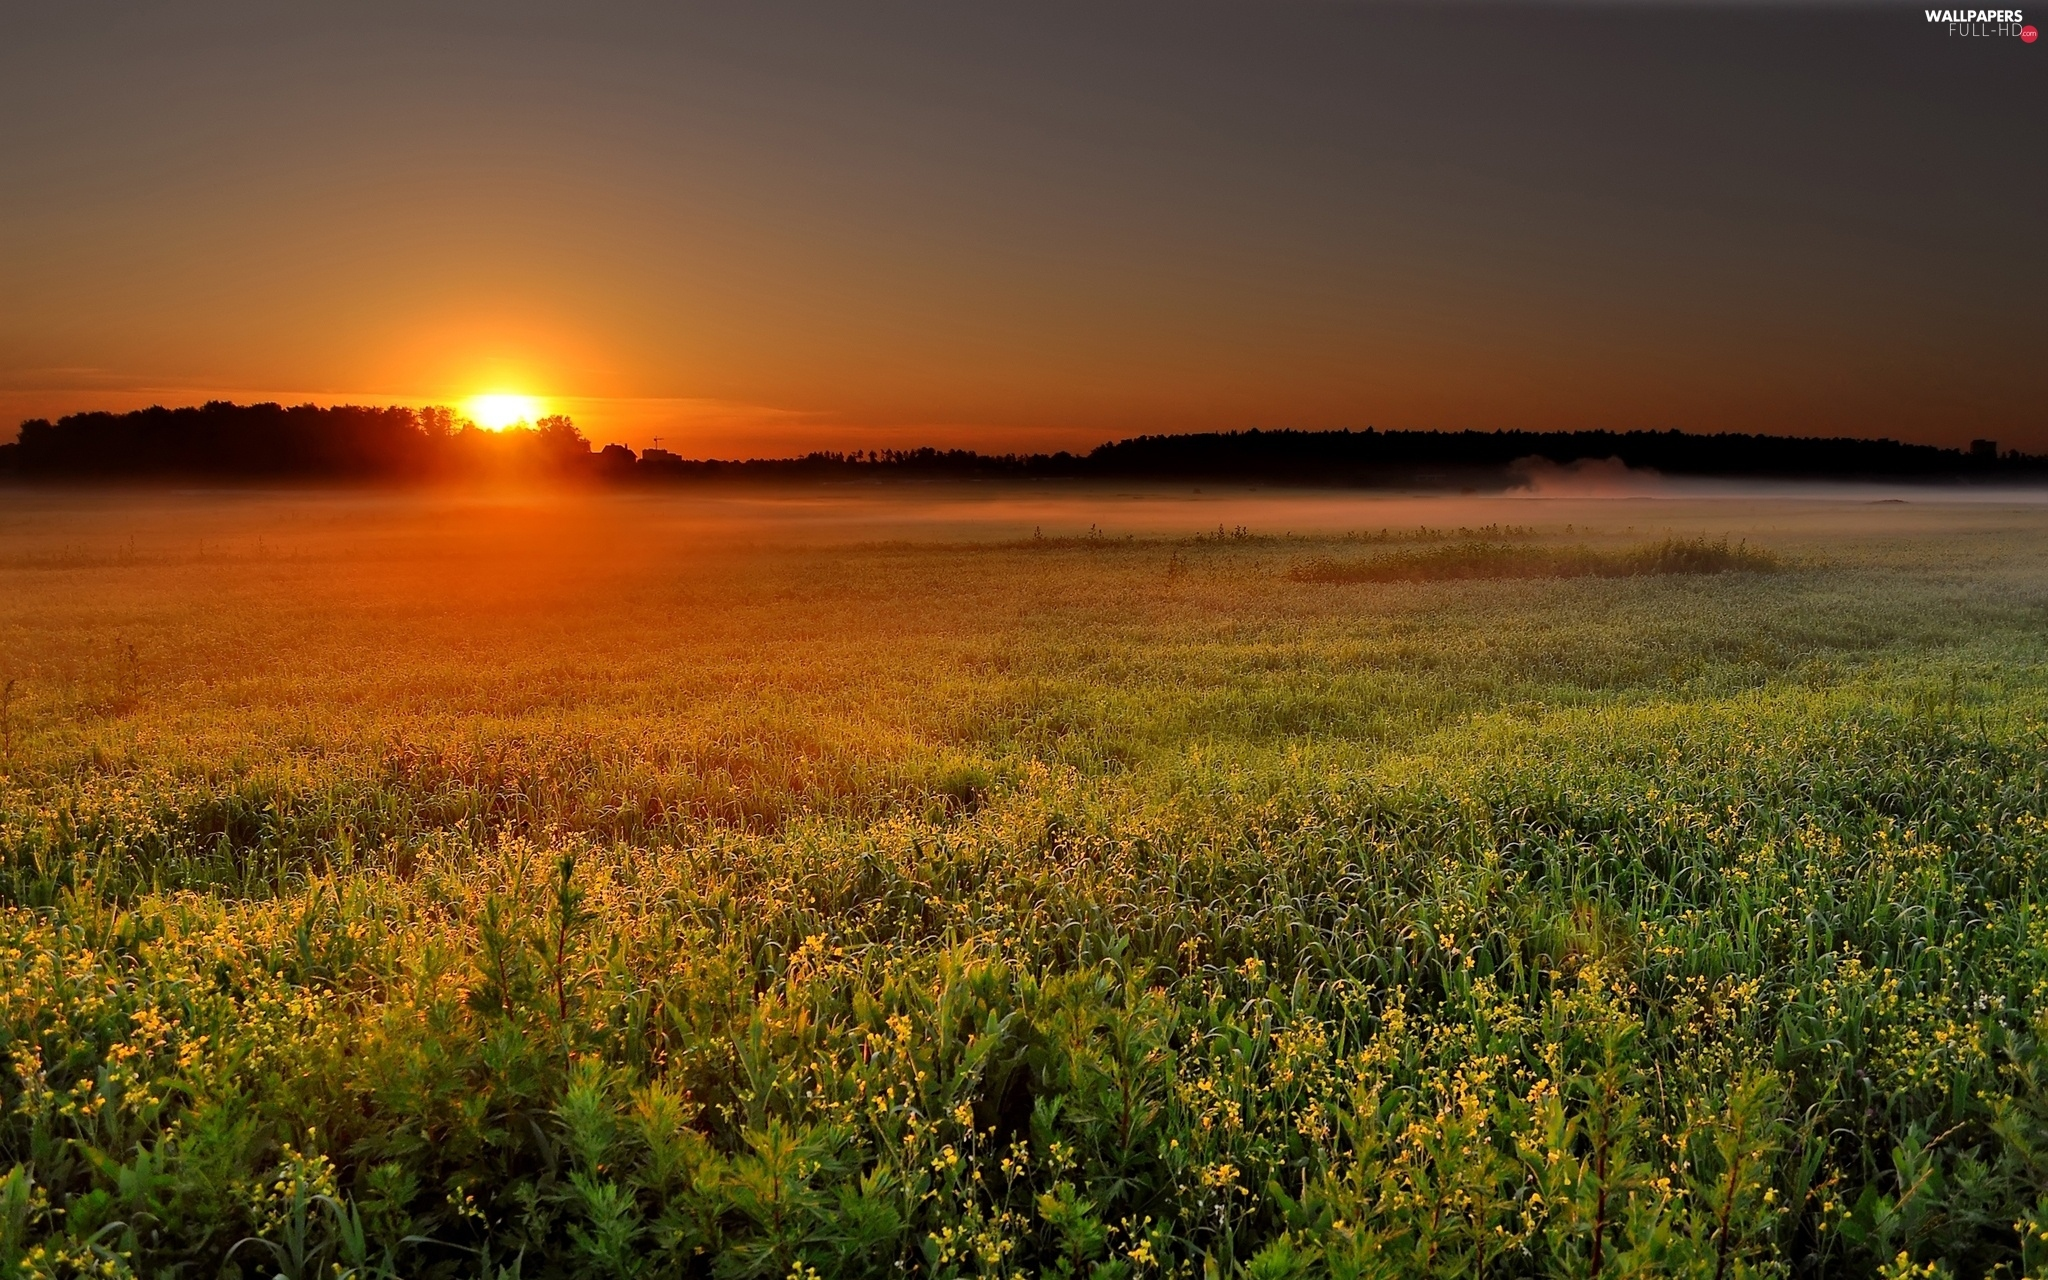 sun, The setting, Floral, Meadow